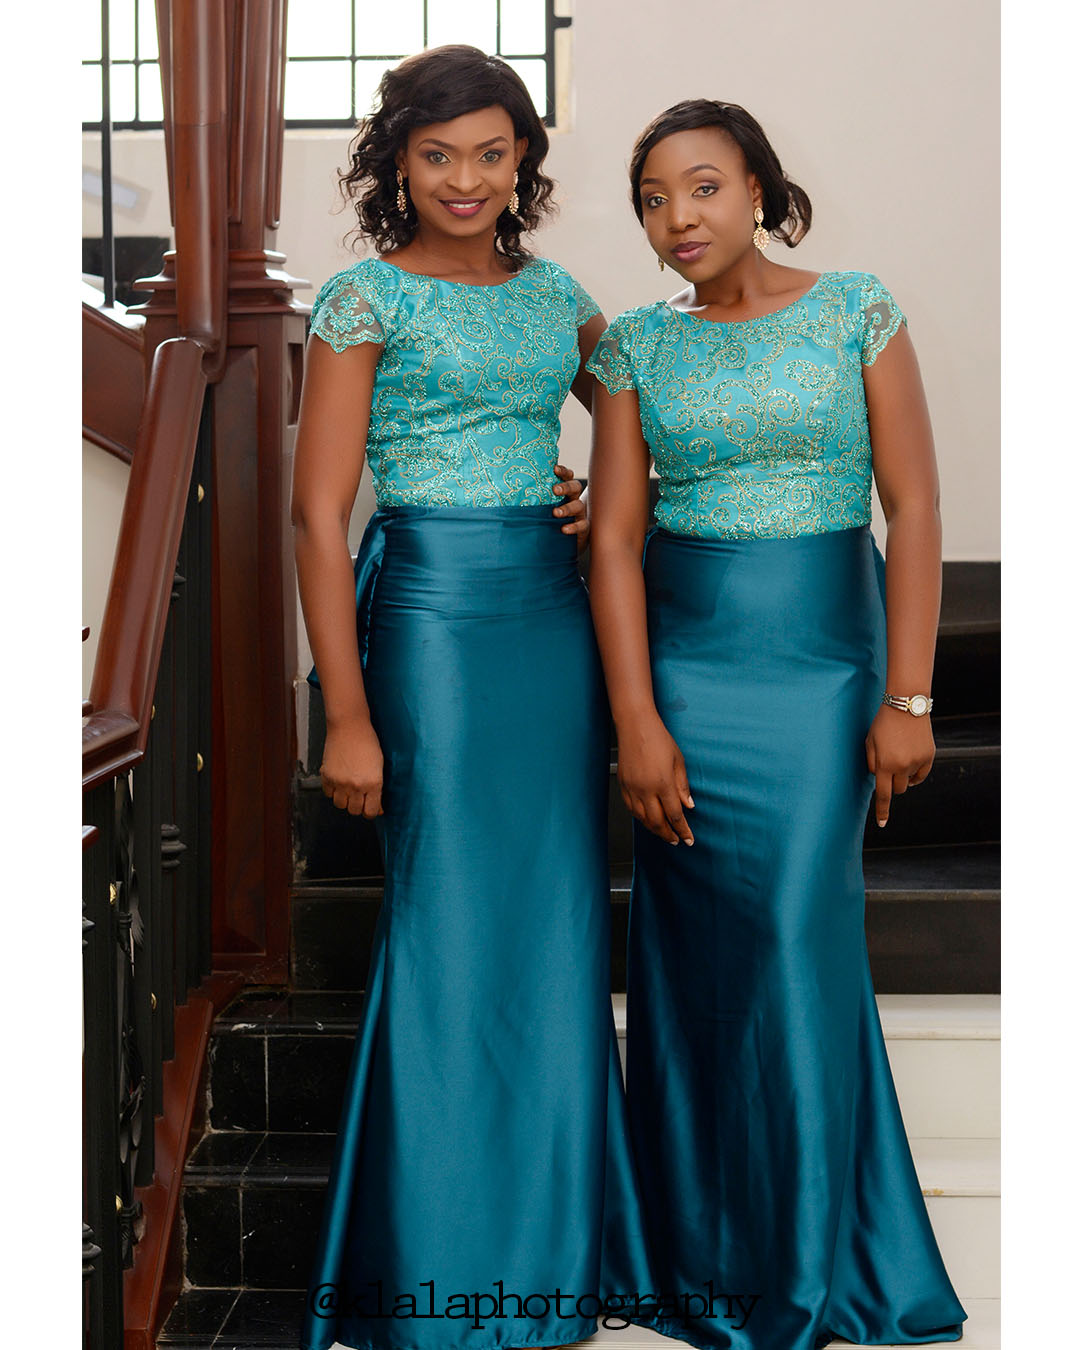 ASOEBISPECIAL: Wedding Pictures Of Banke And Yomi